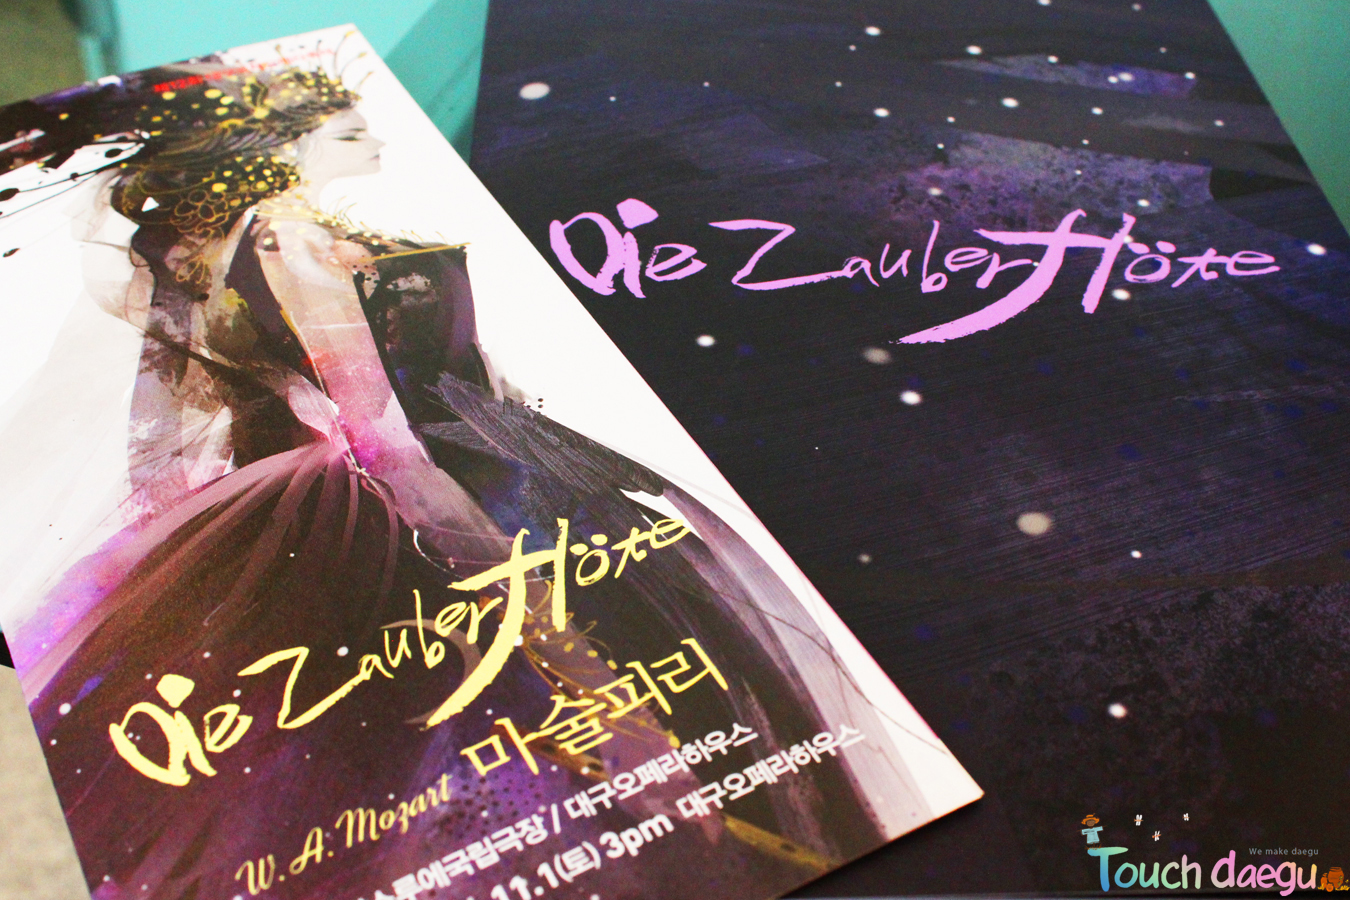 Program guides of Magic Flute